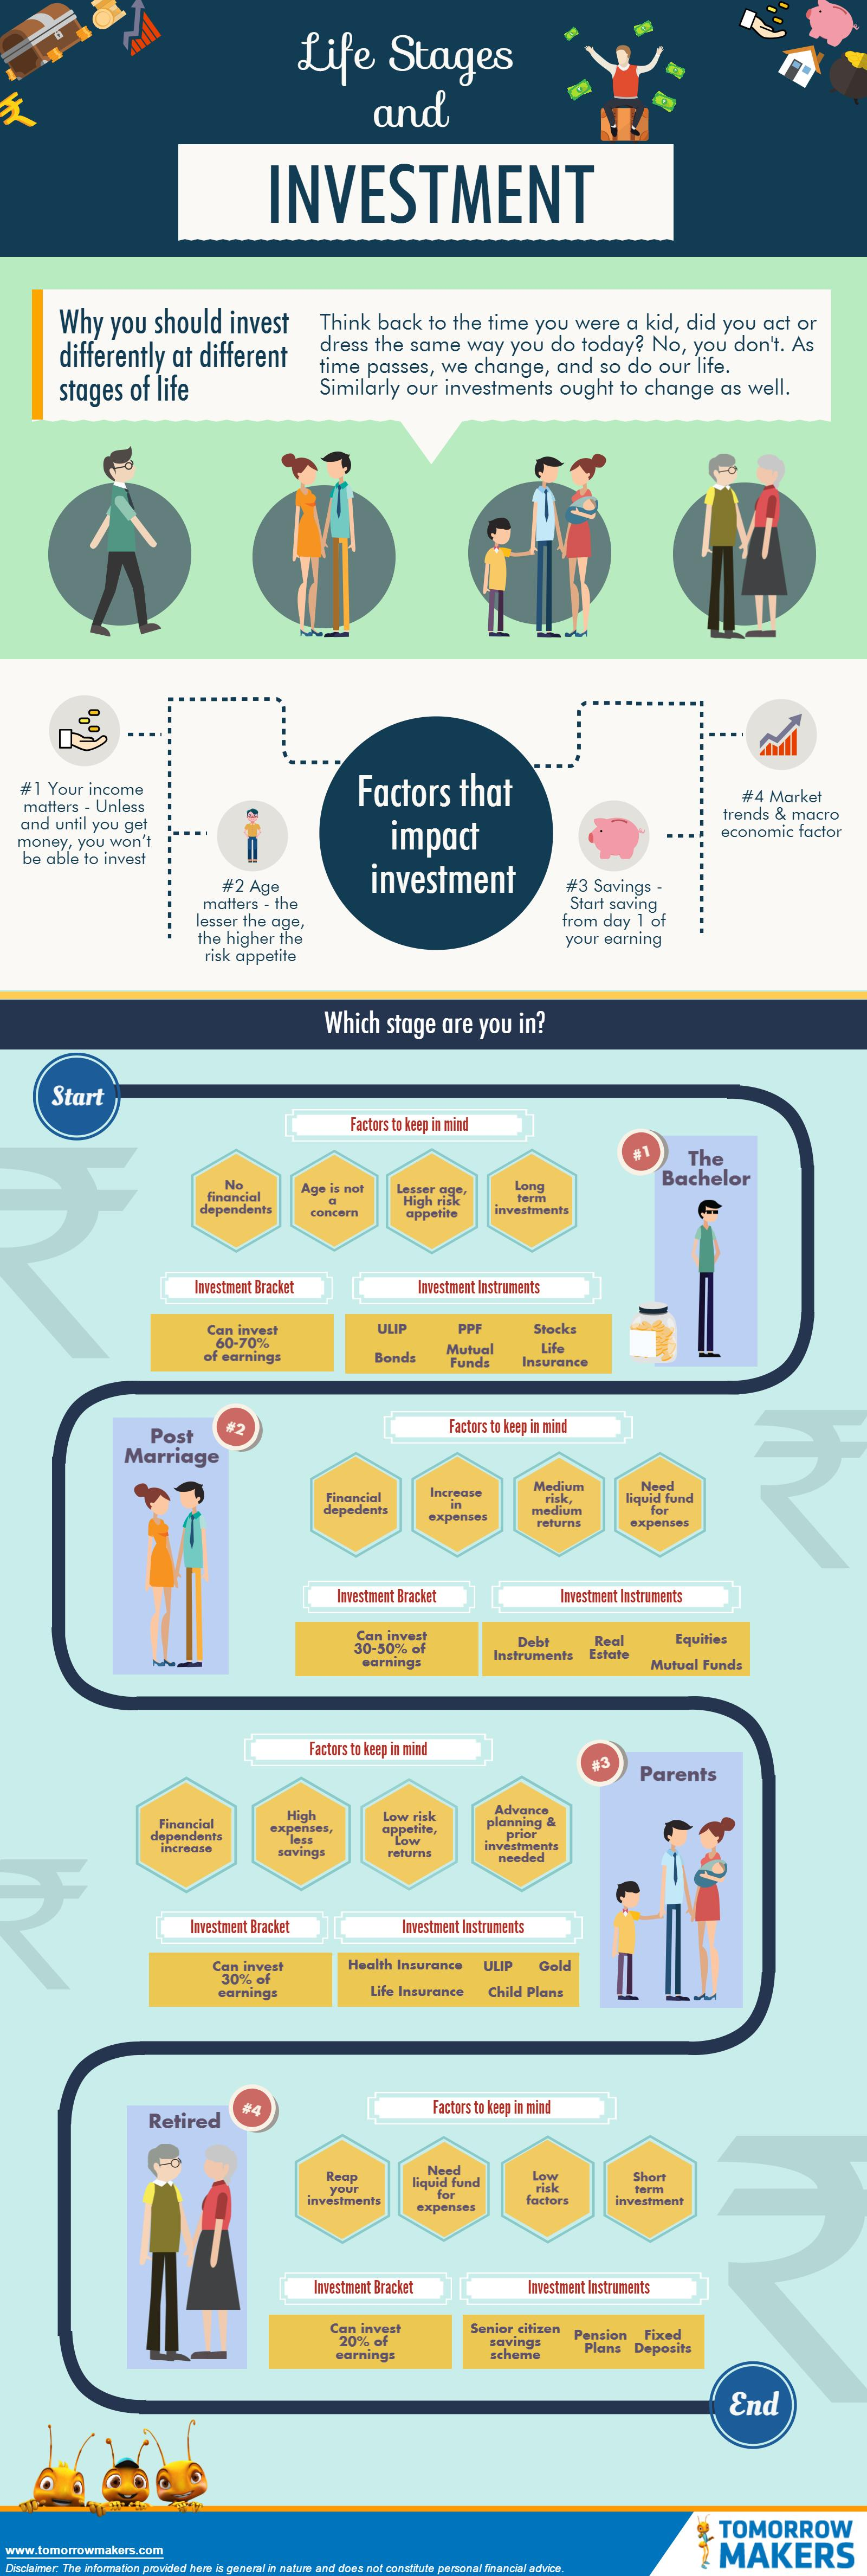 life-stages-and-investment